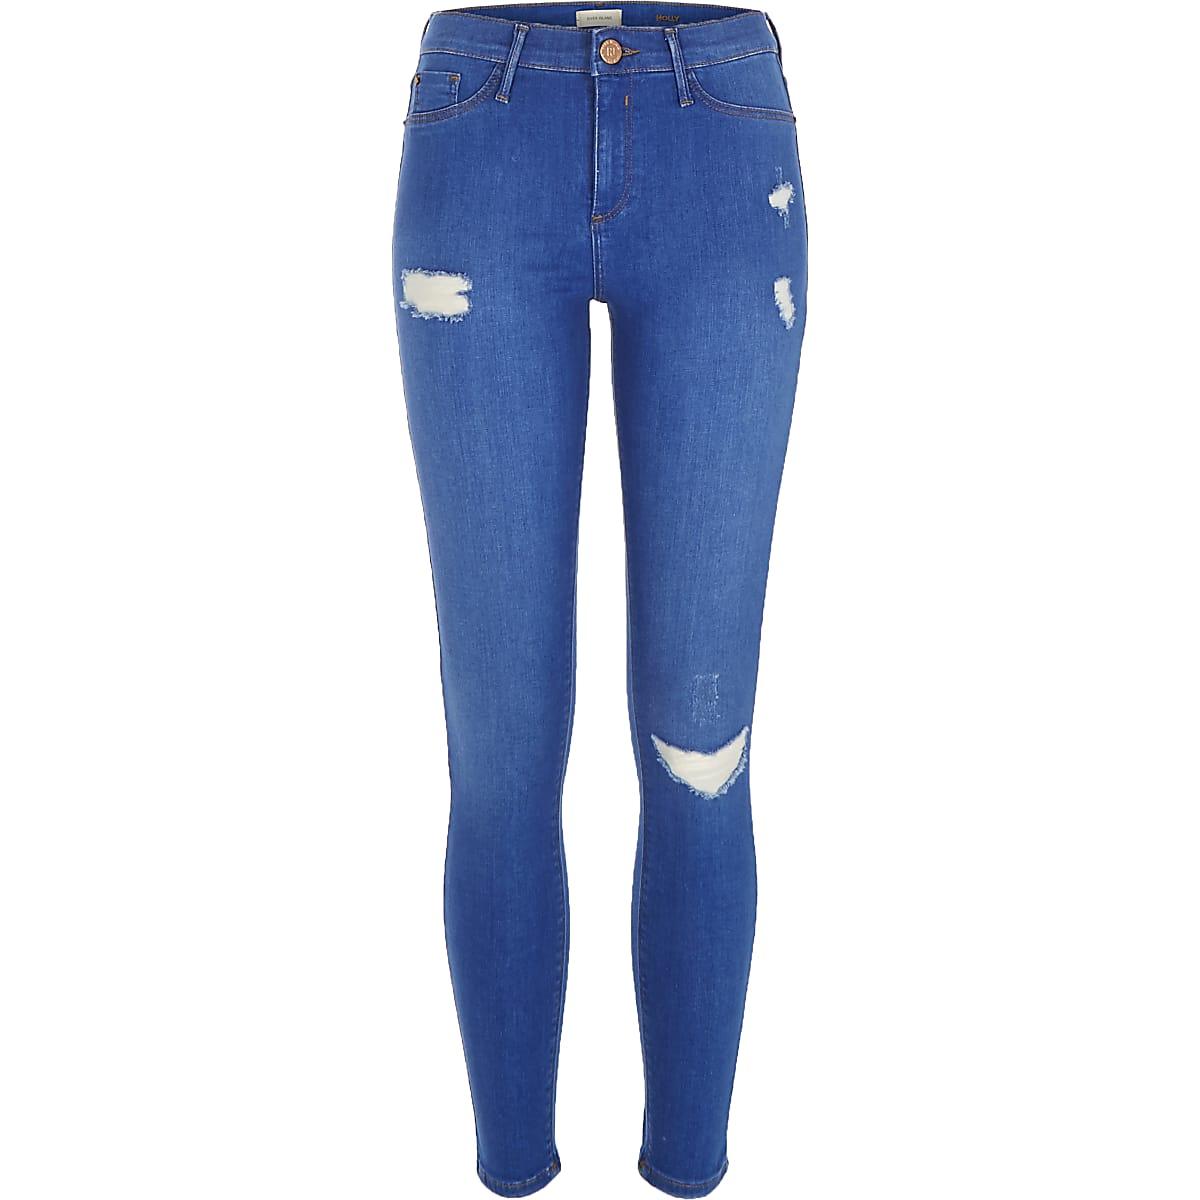 Bright blue wash ripped Molly jeggings